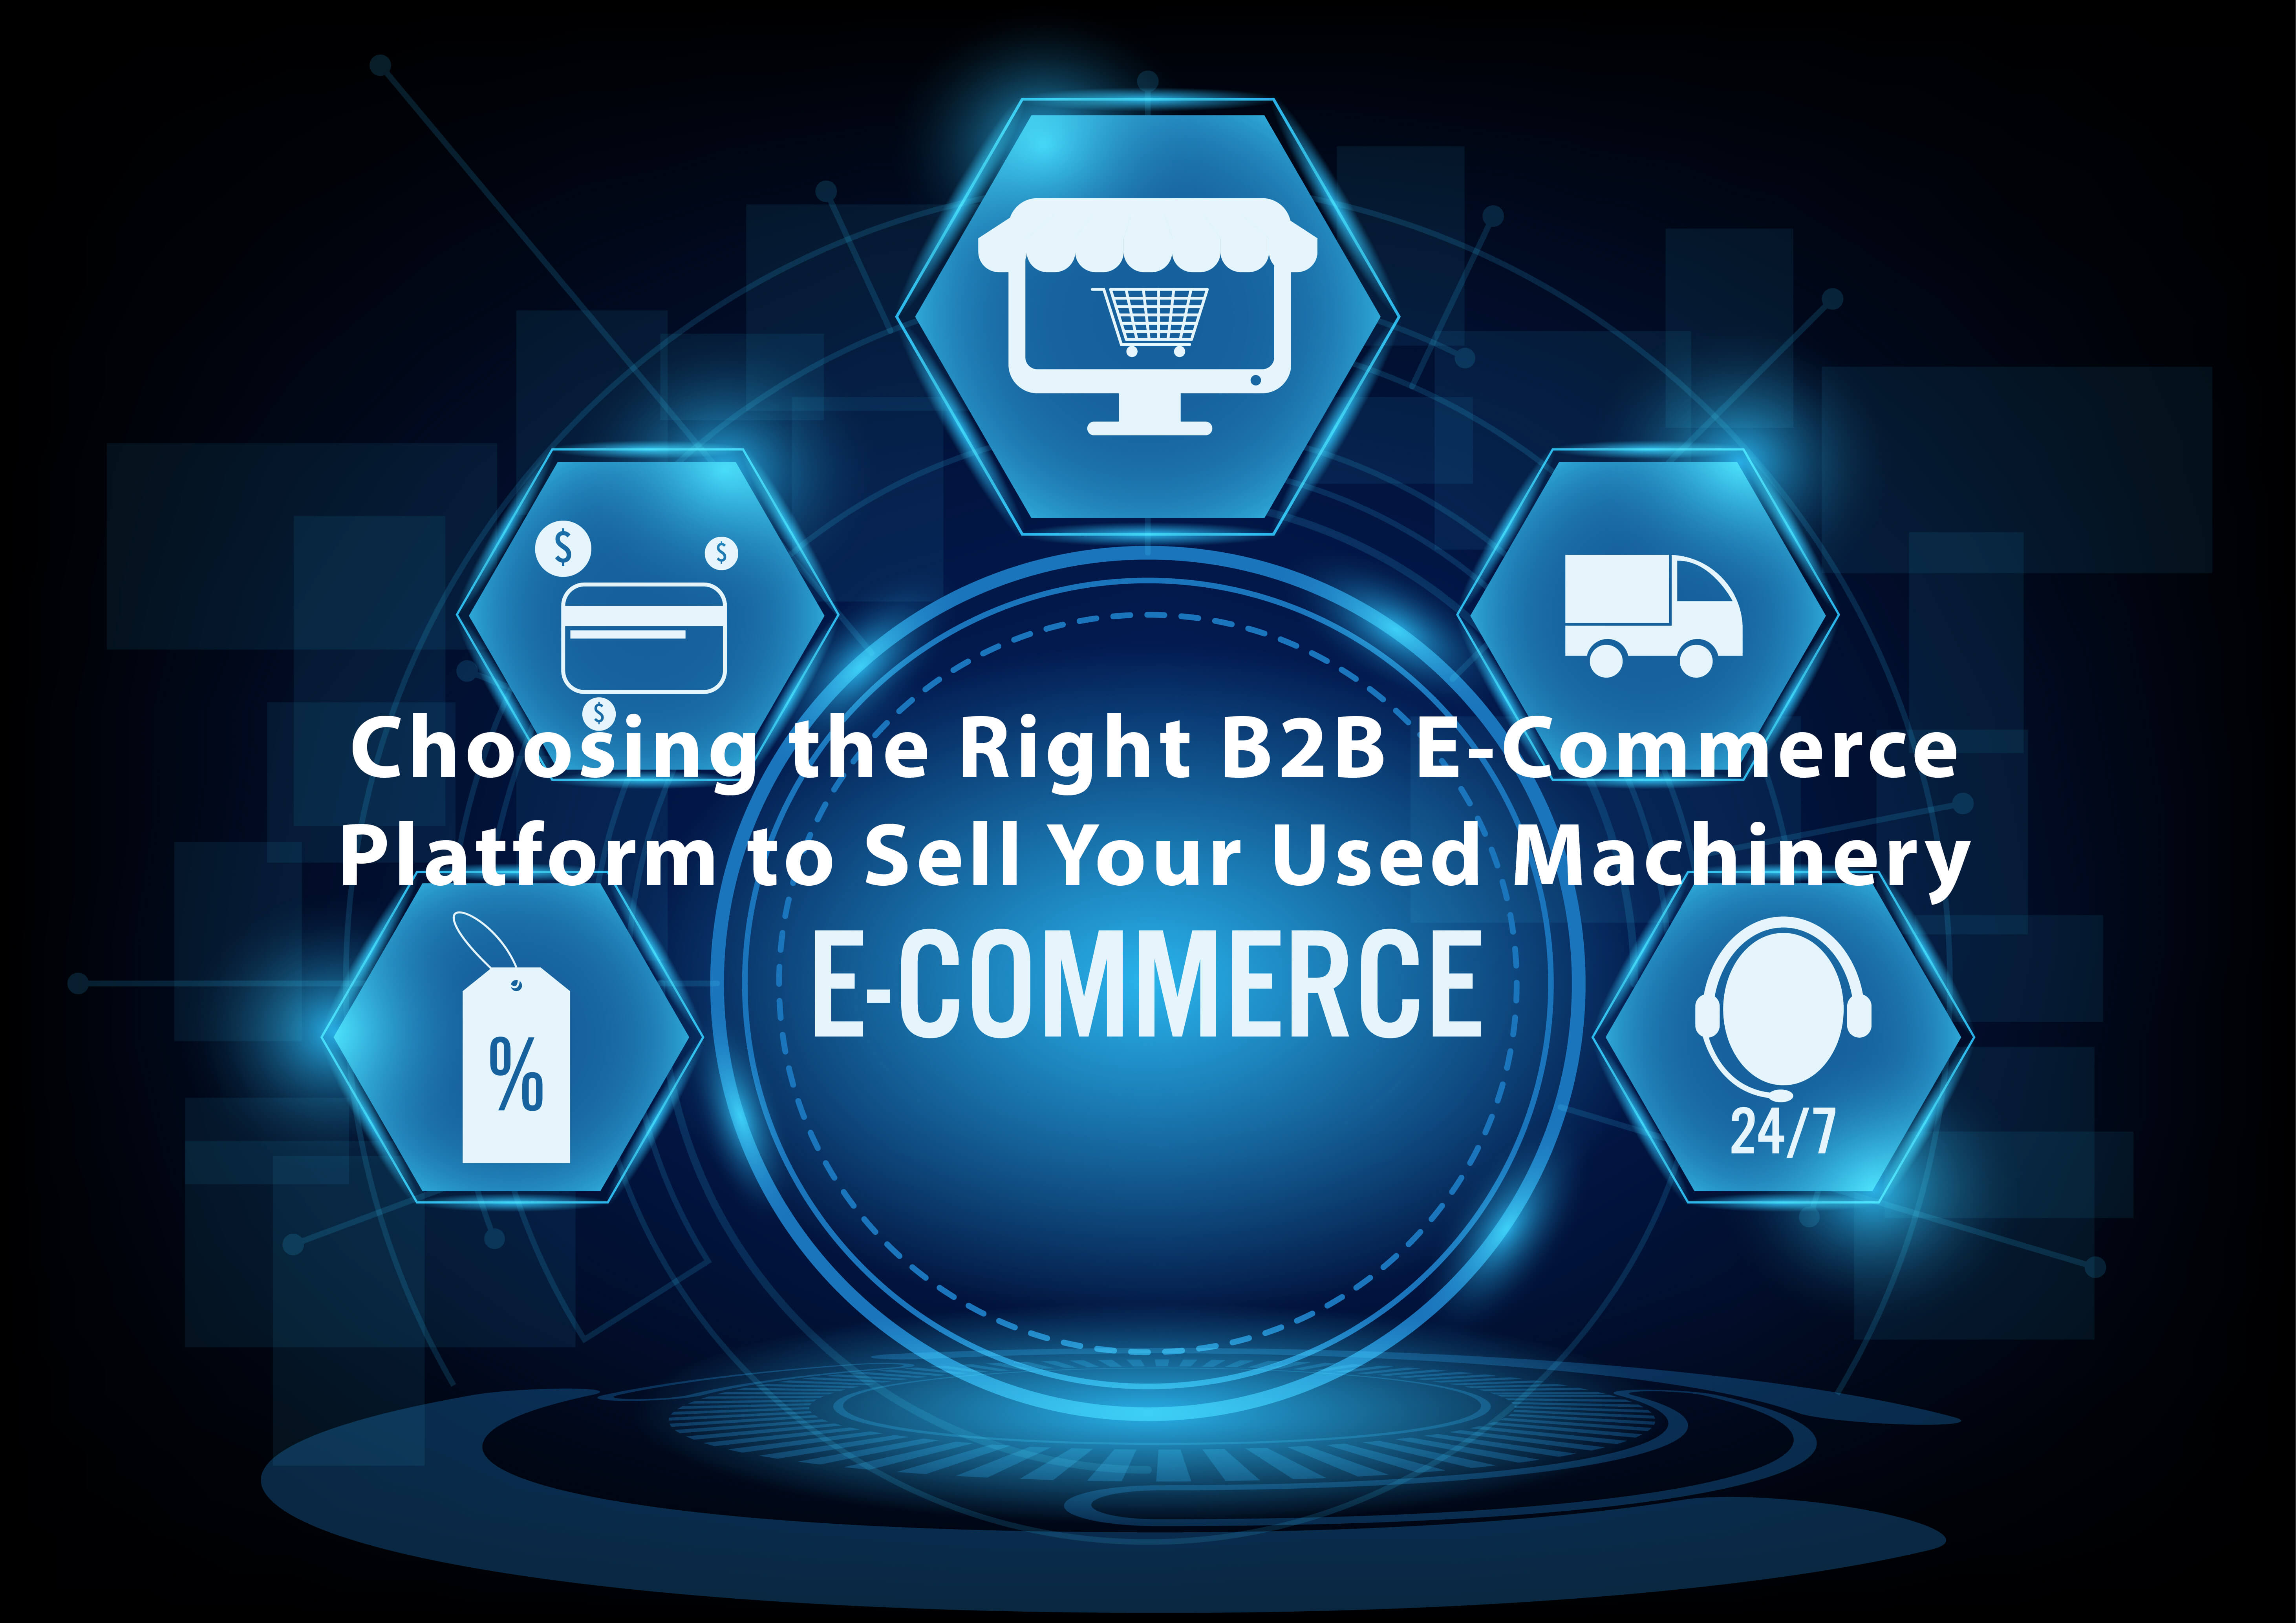 B2B E-Commerce Platforms